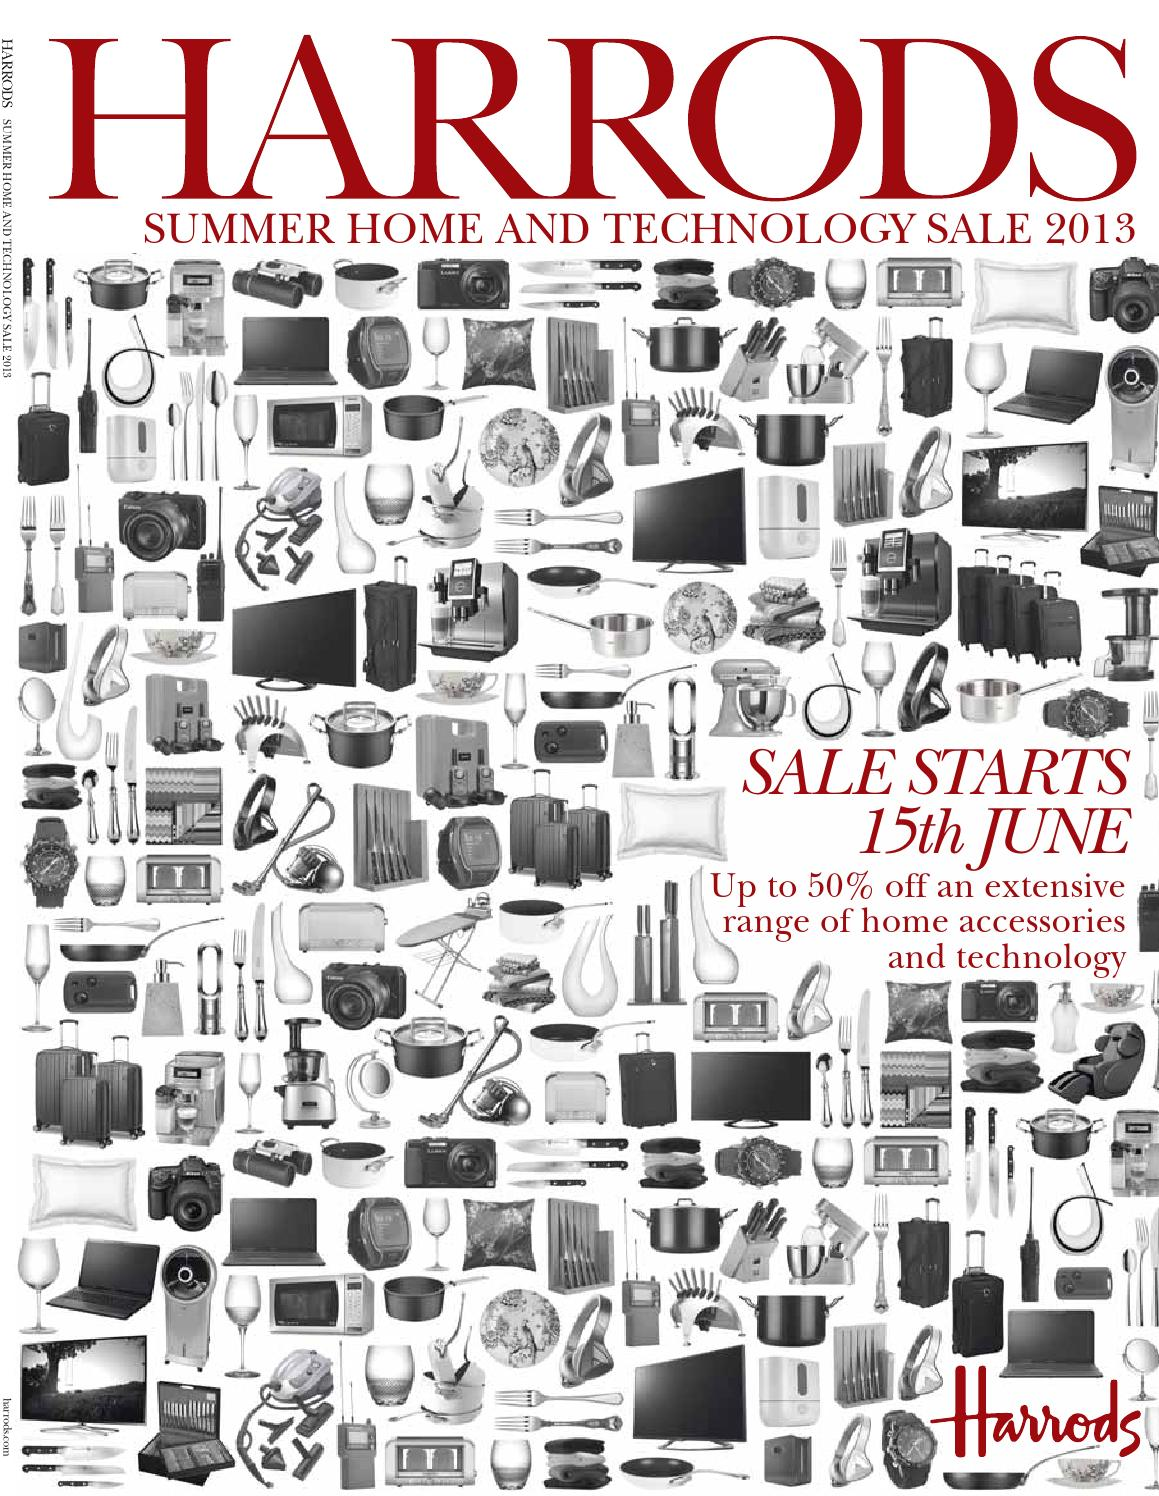 Summer Home & Technology Sale 2013 by Harrods online - issuu